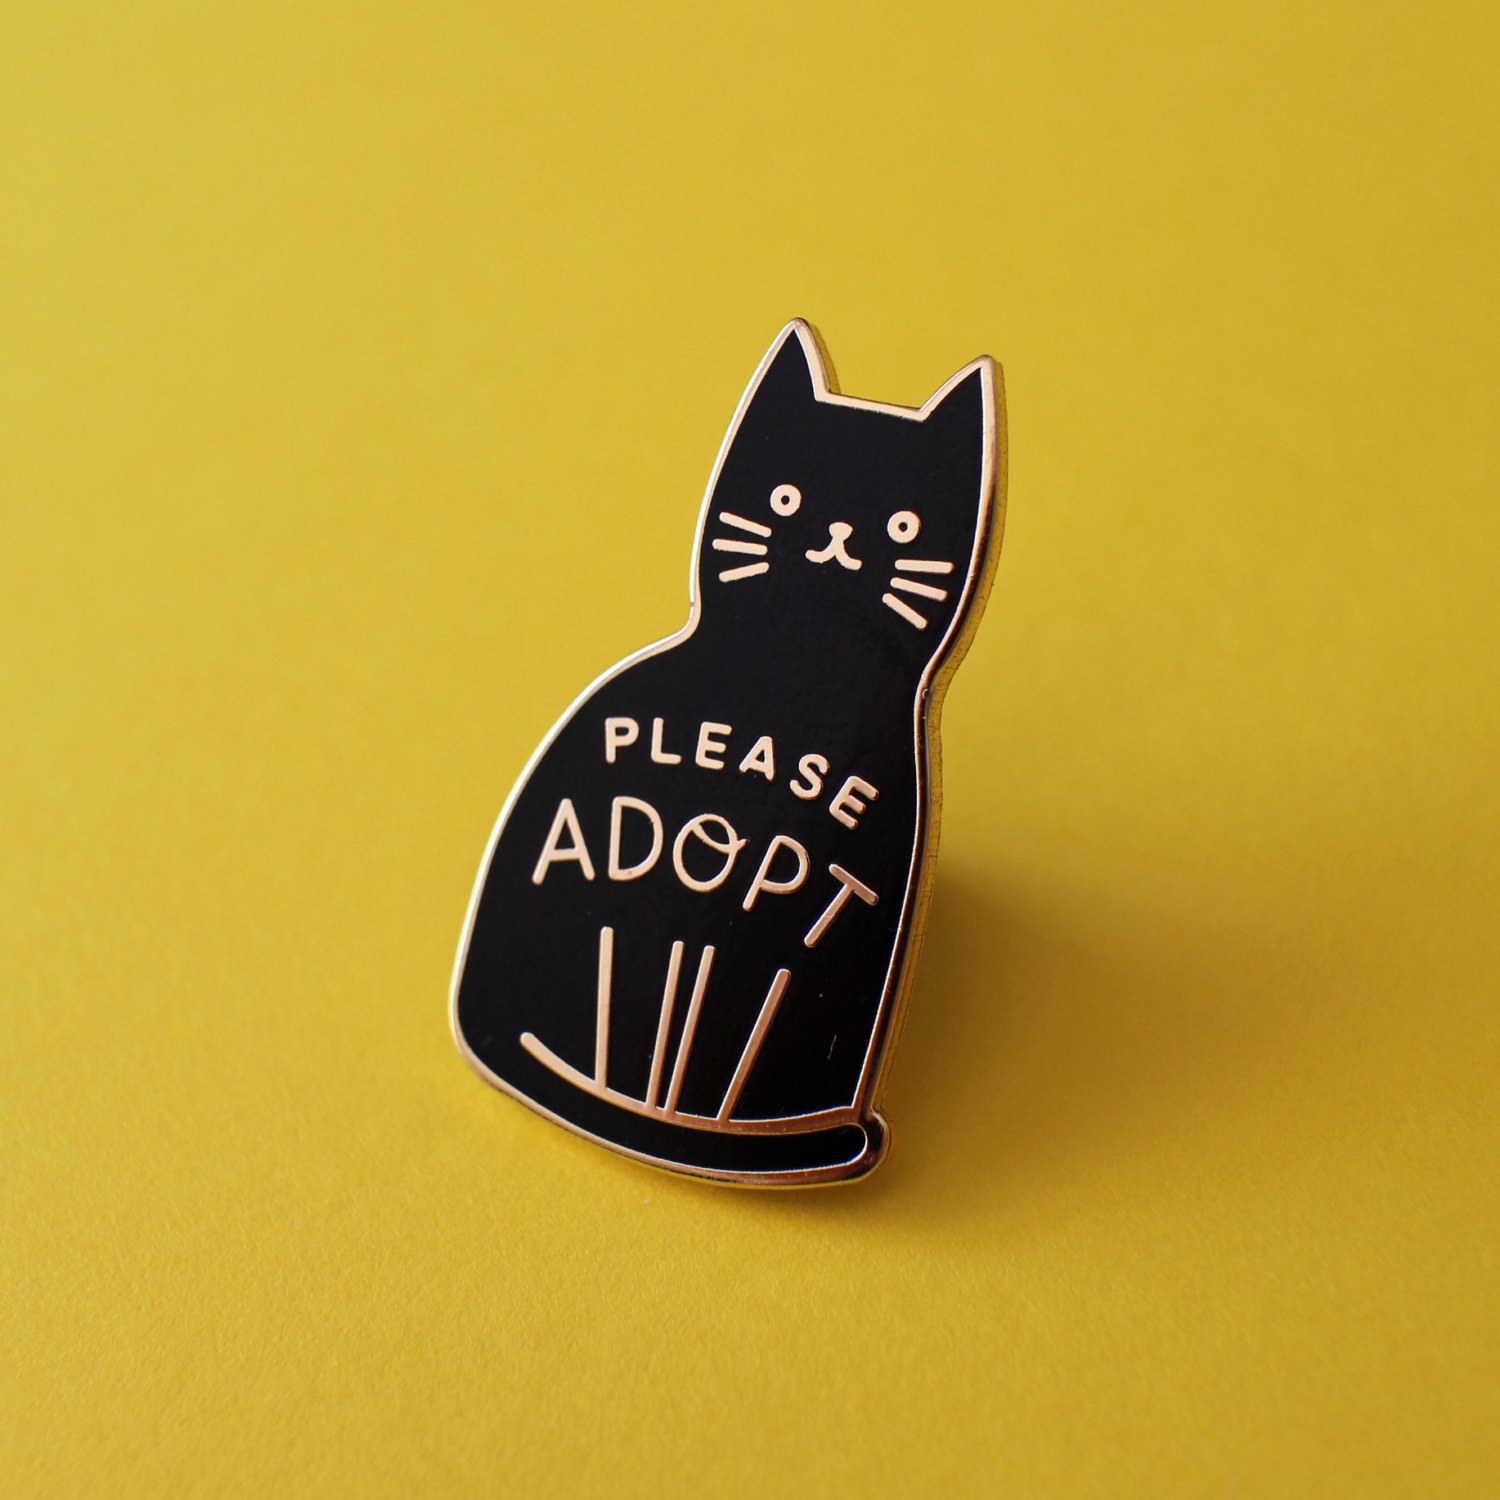 21 Things For People Who Love Black Cats